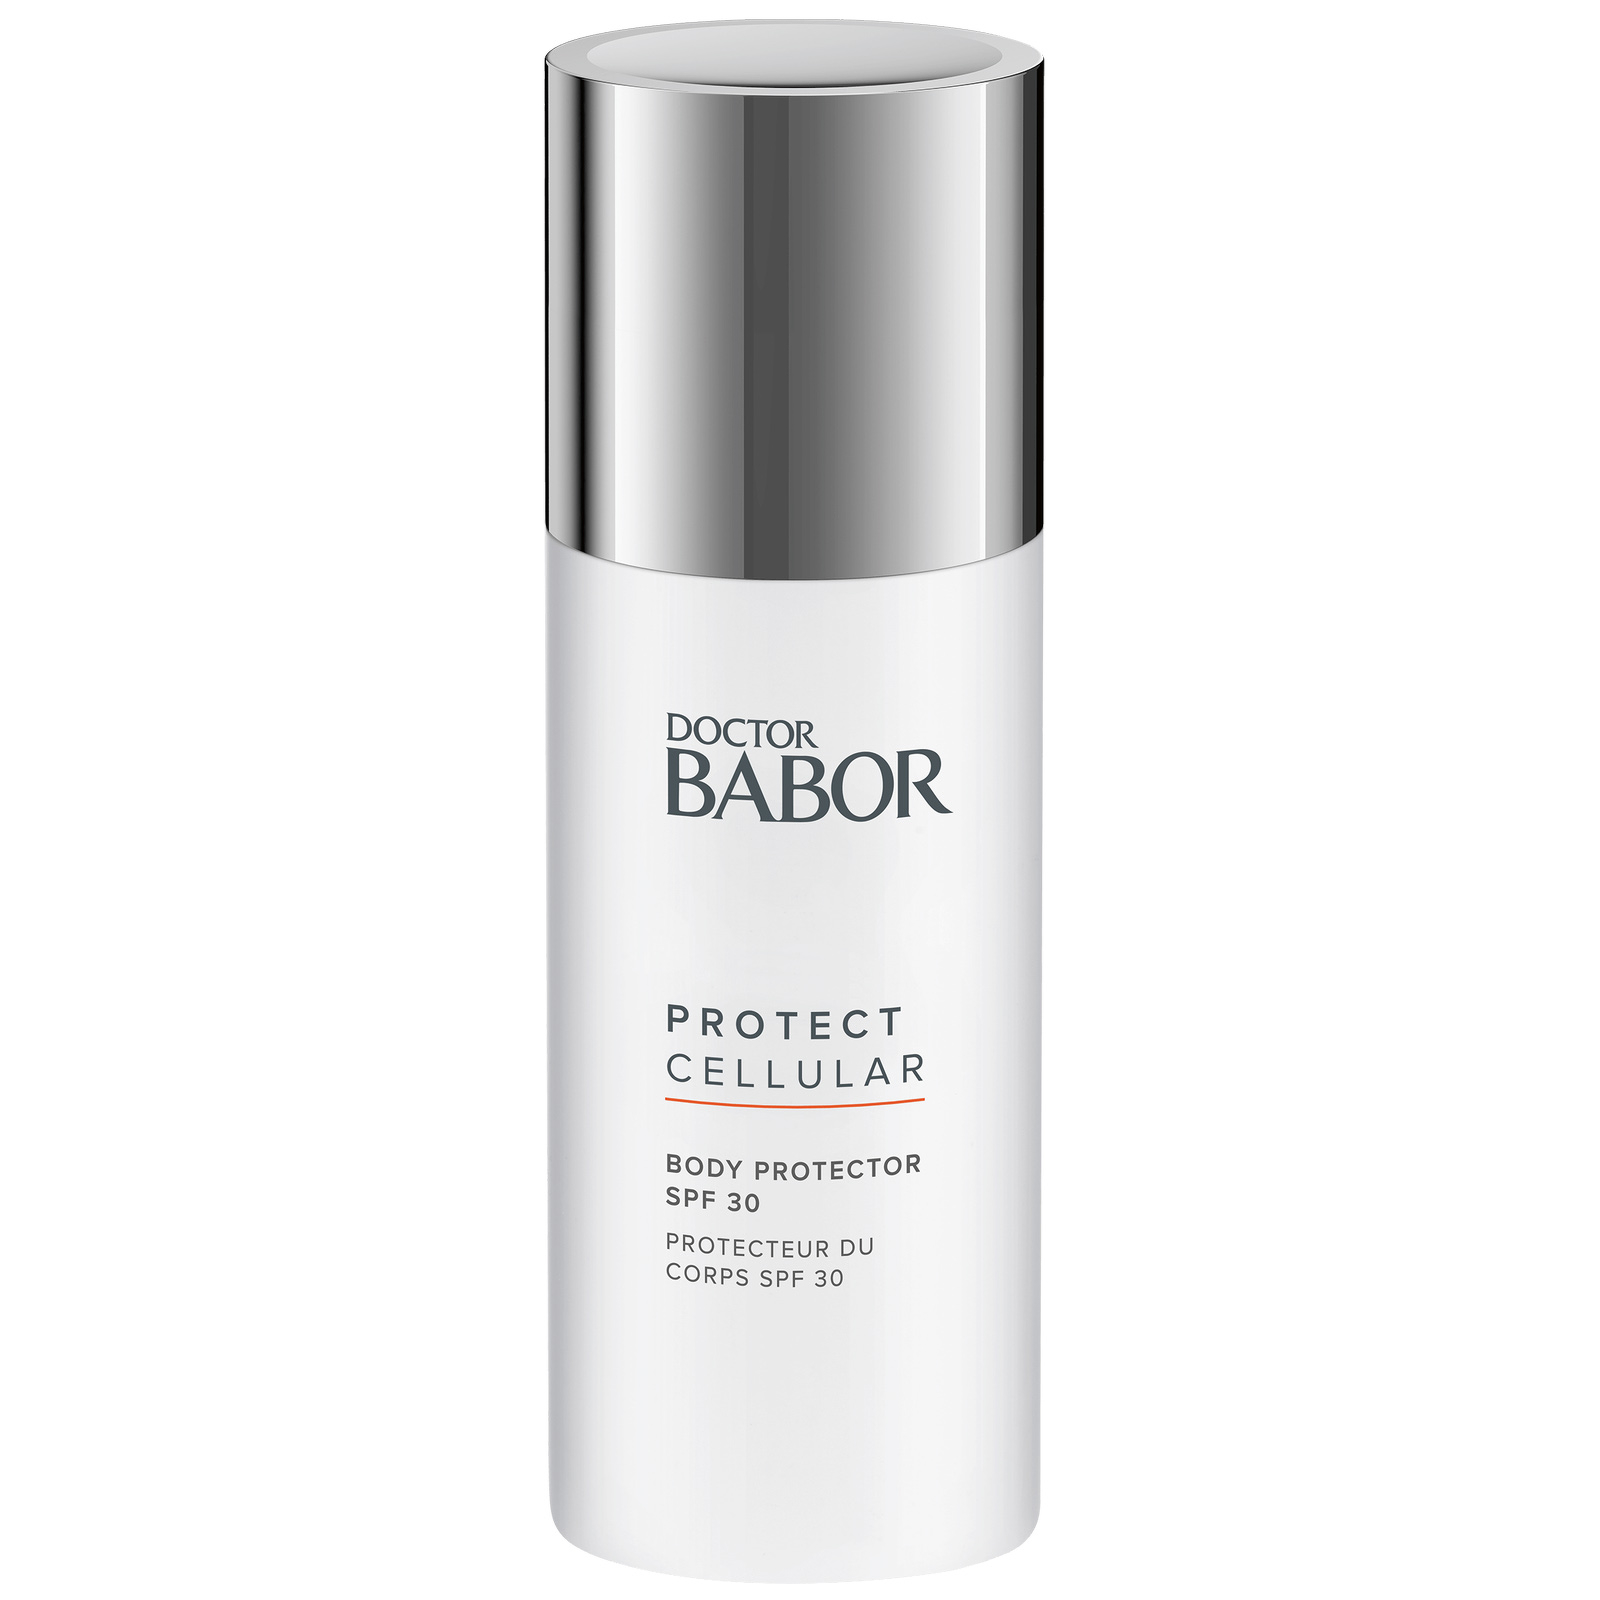 BABOR Doctor Babor Protect Cellular: Body Protection SPF30 150ml